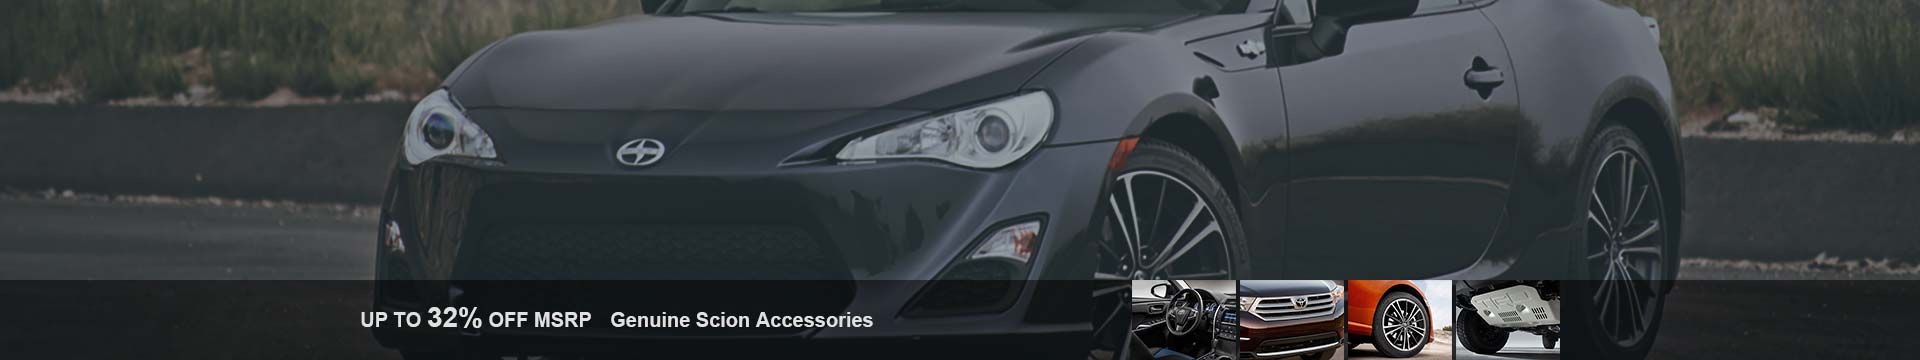 Shop Scion accessories with lowest prices